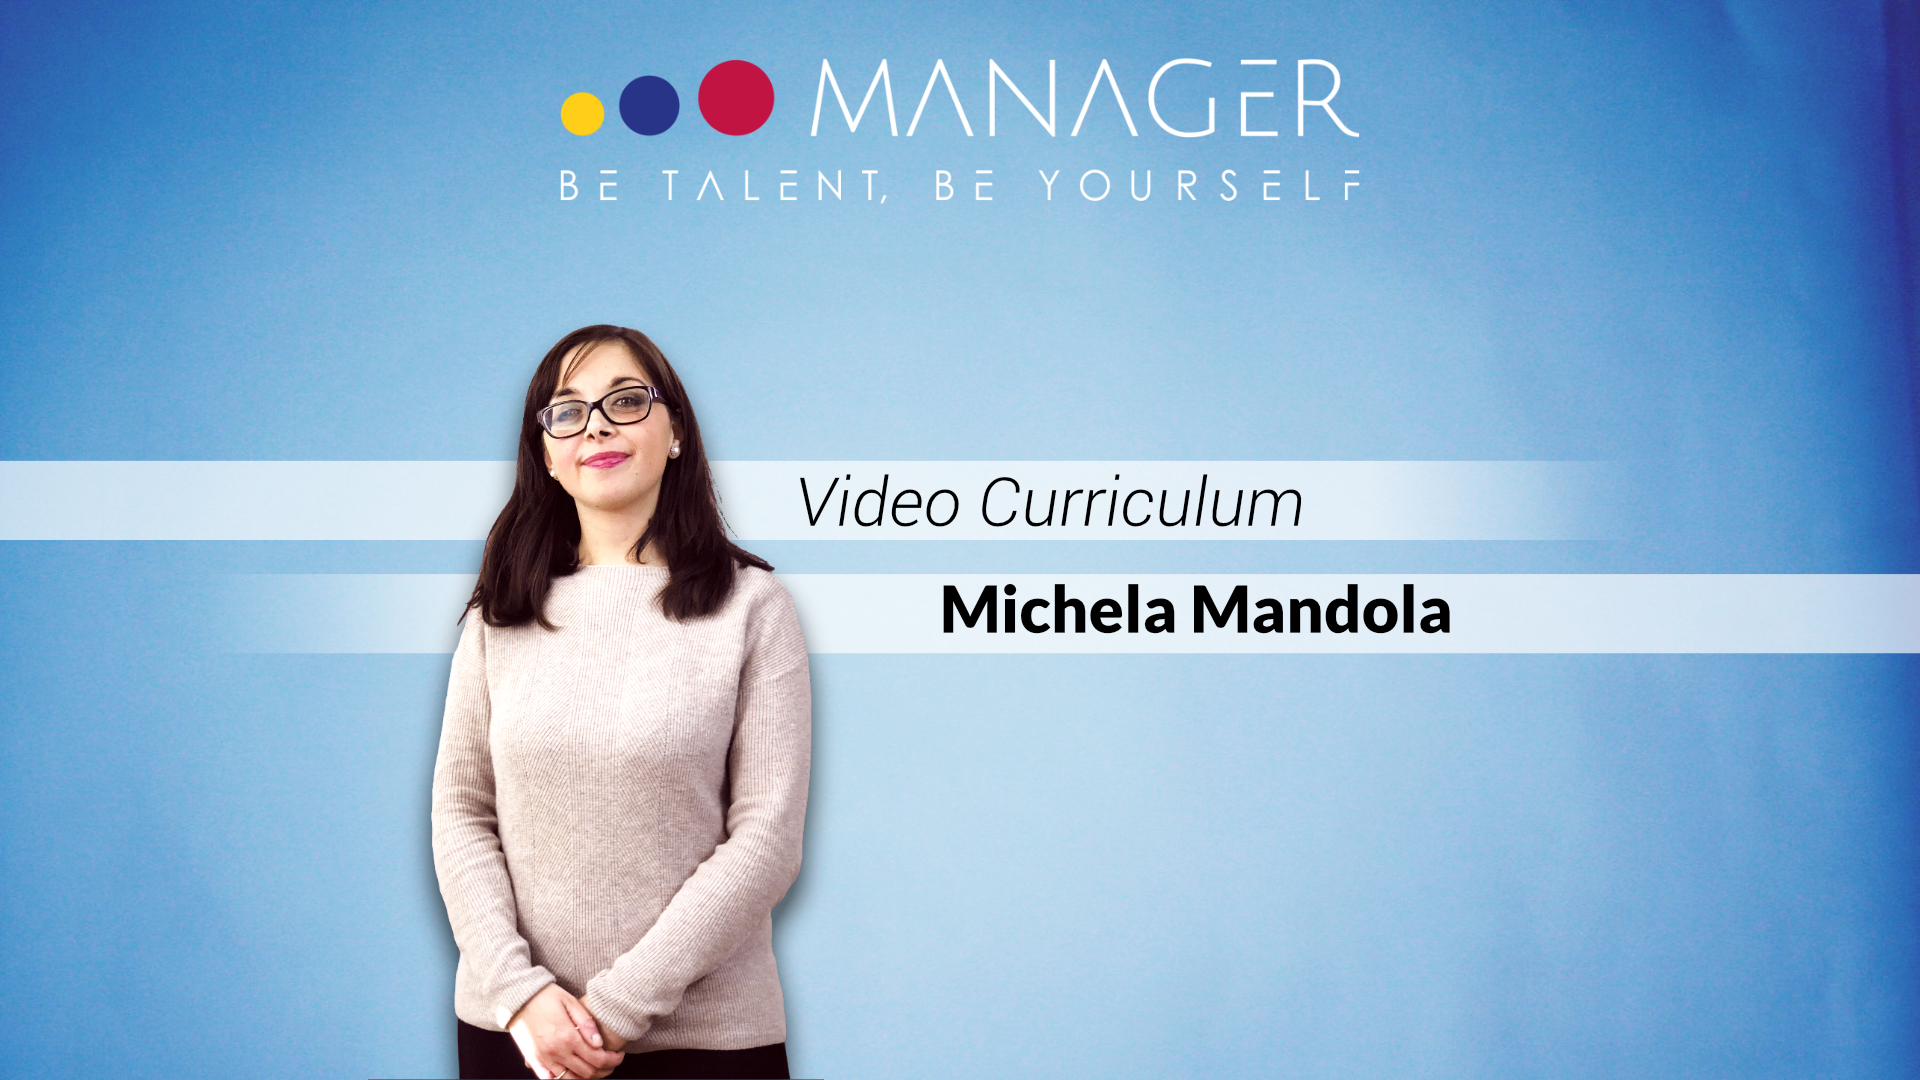 video curriculum michela mandola